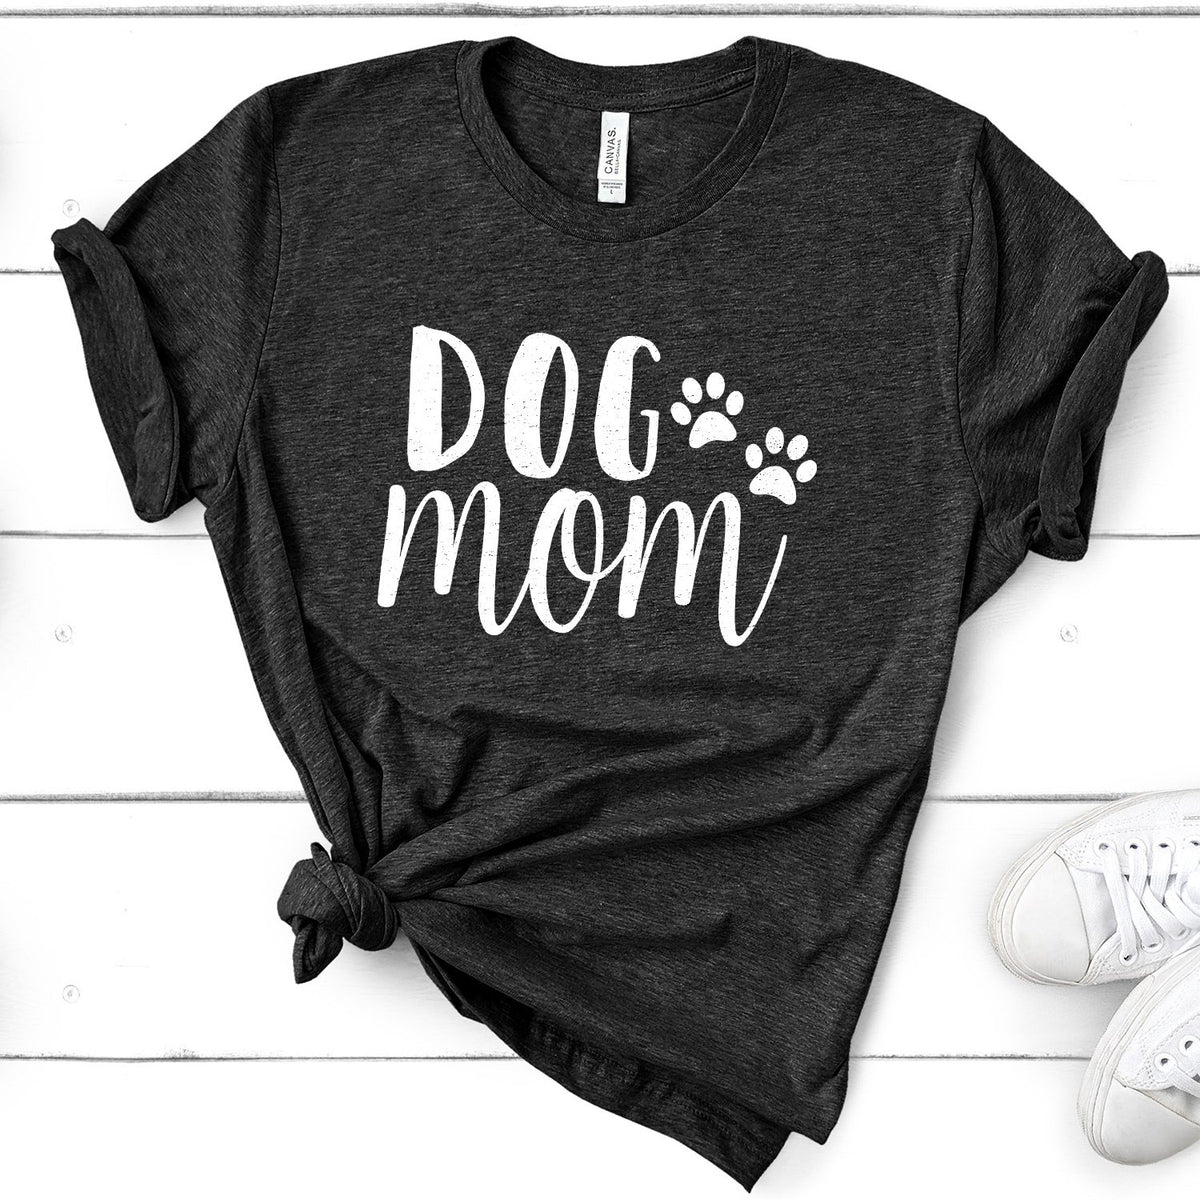 Dog Mom - Short Sleeve Tee Shirt